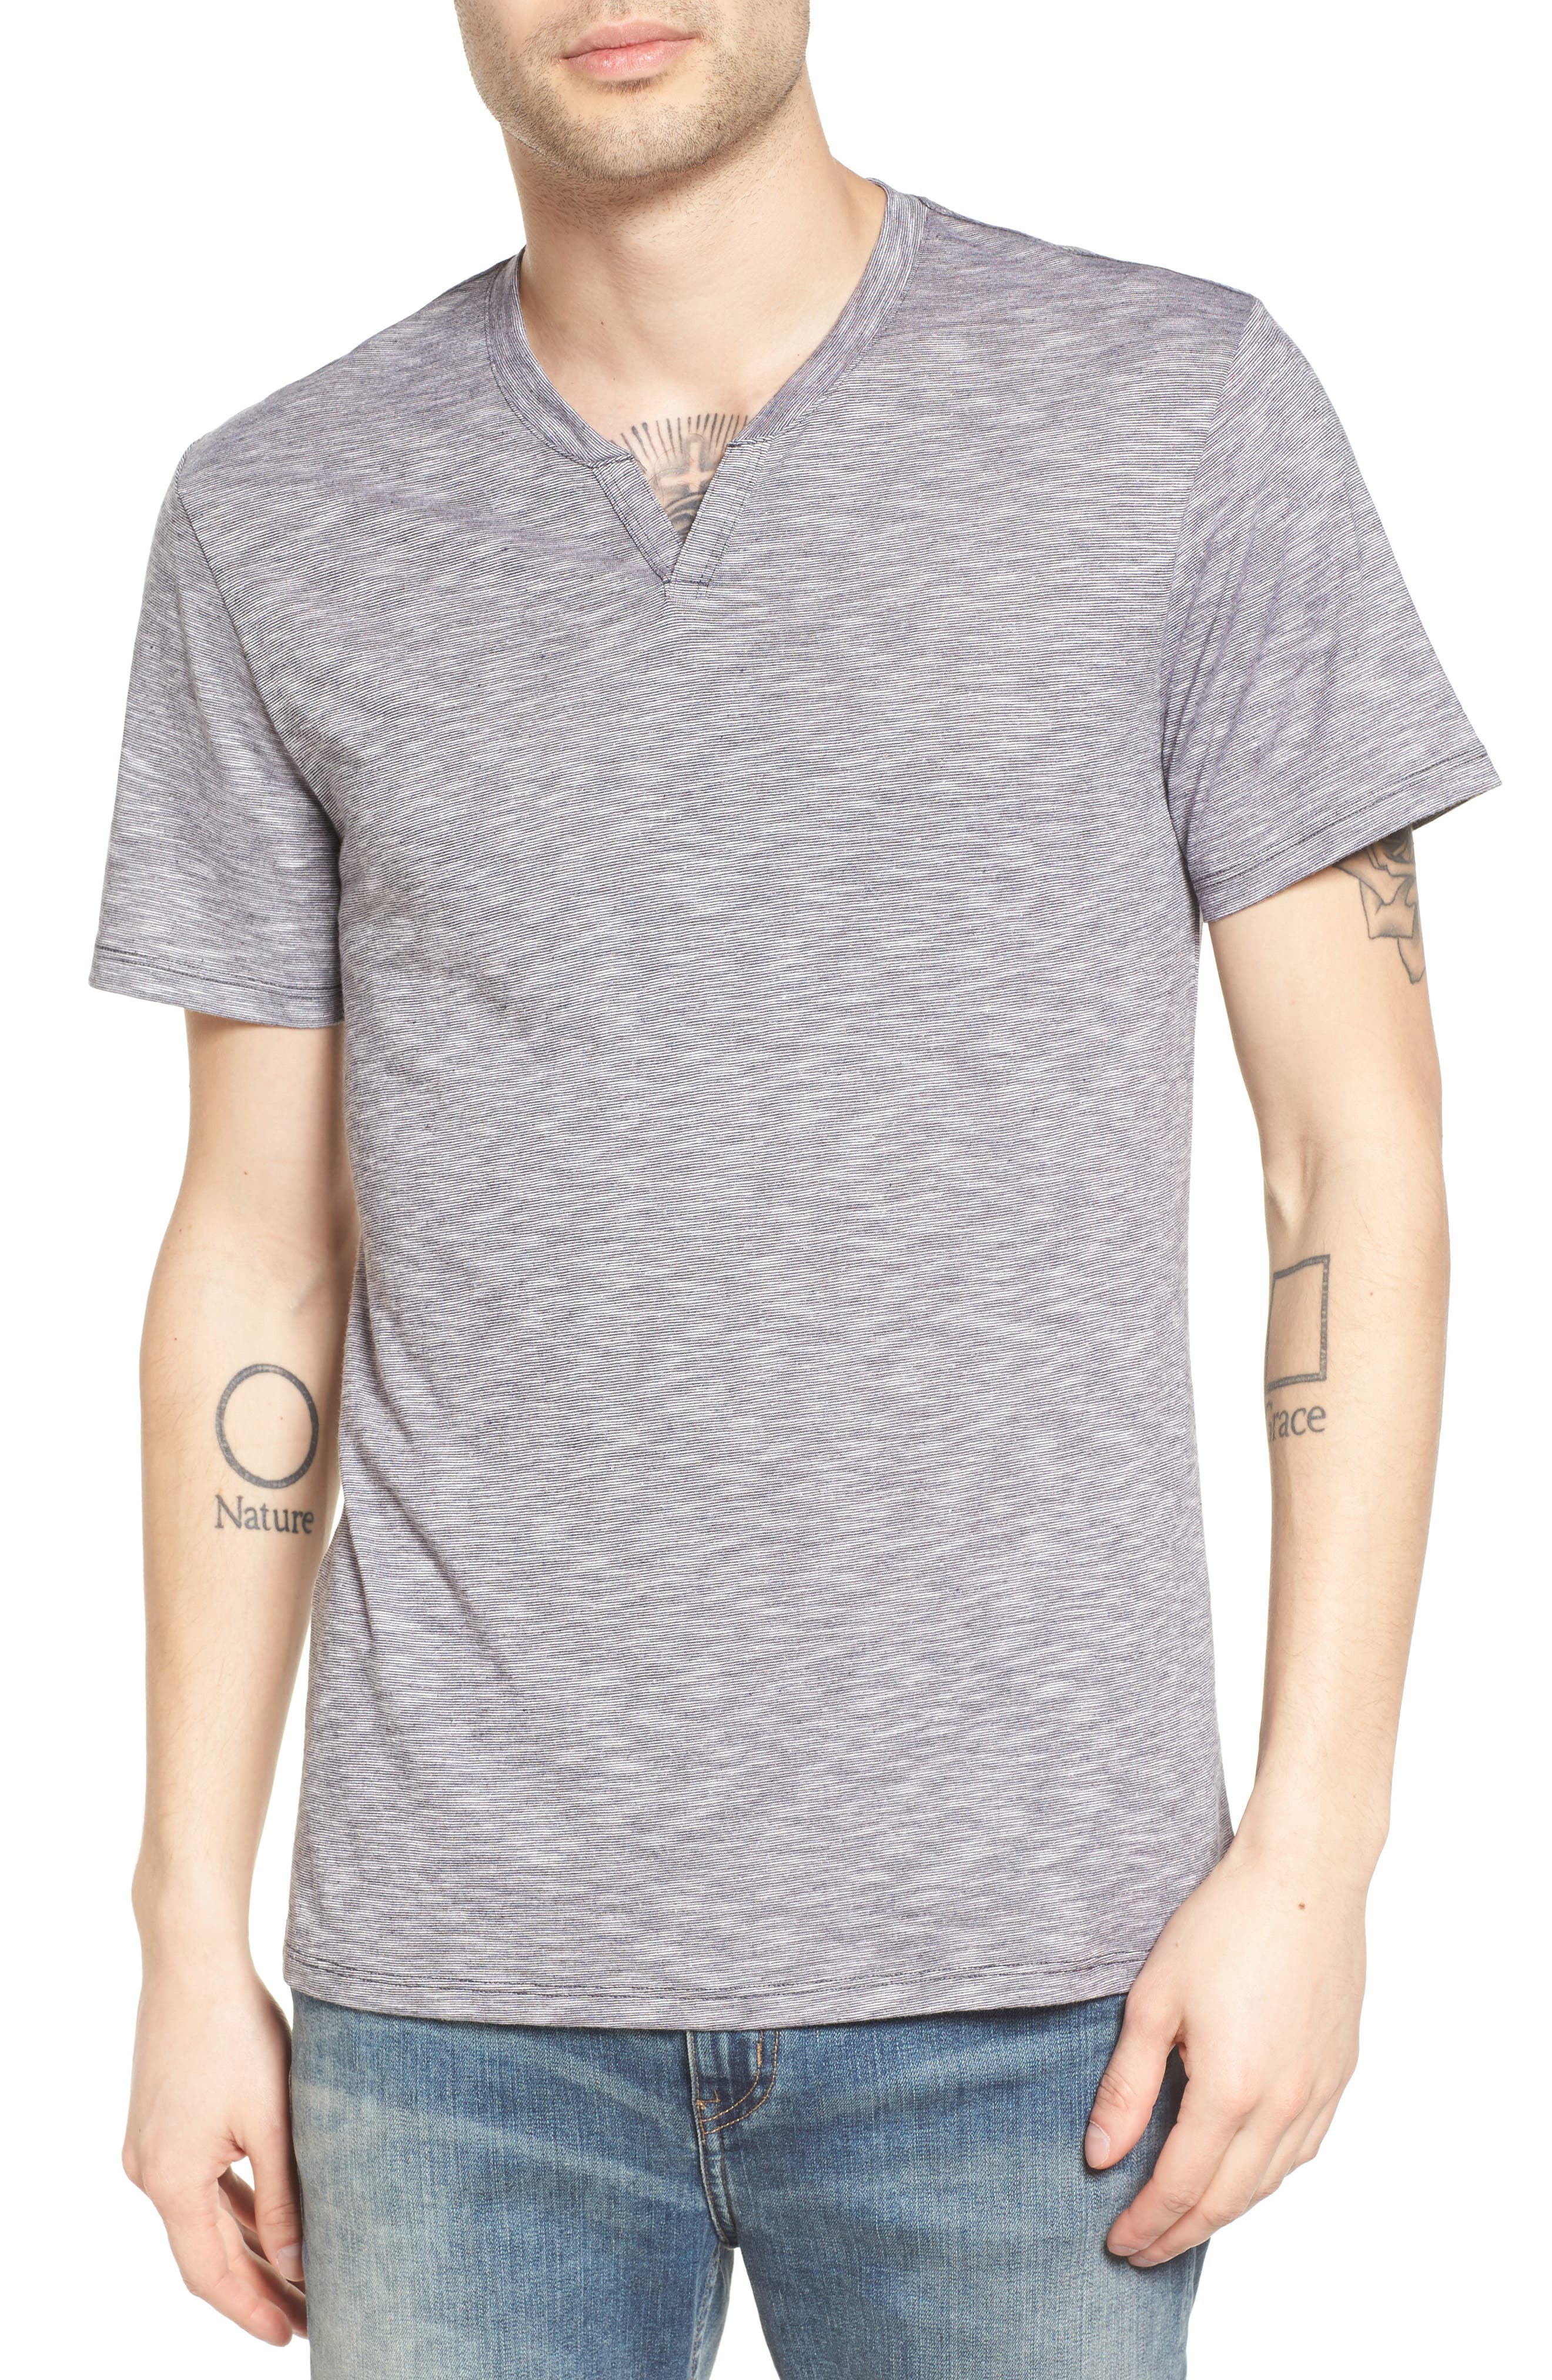 The Rail Slub Feeder Stripe Split Neck T-Shirt